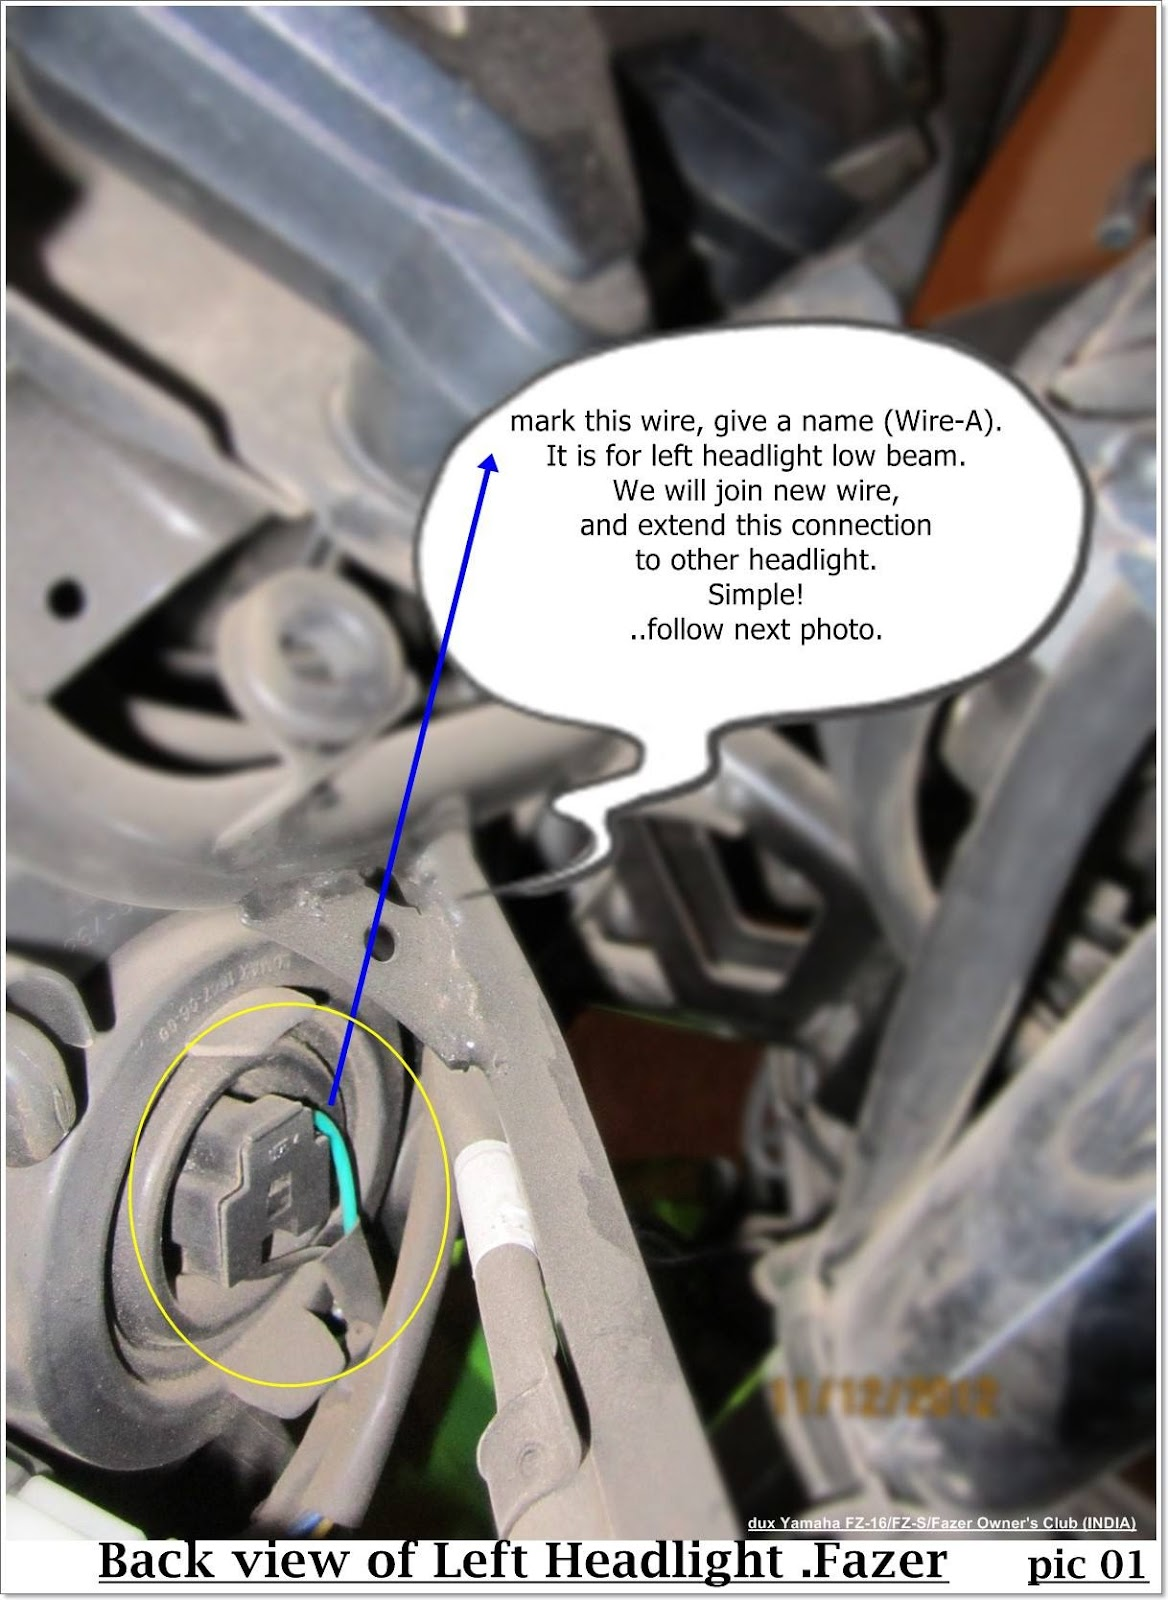 Diytwin Headlight Beam For Fazer Wiring Diagram Yamaha Fz16 How To Light Up Both Lights In I Recommend Relay With Fuse Which Is Not Demonstrated Here Follow Photo By Total Four Its Easy